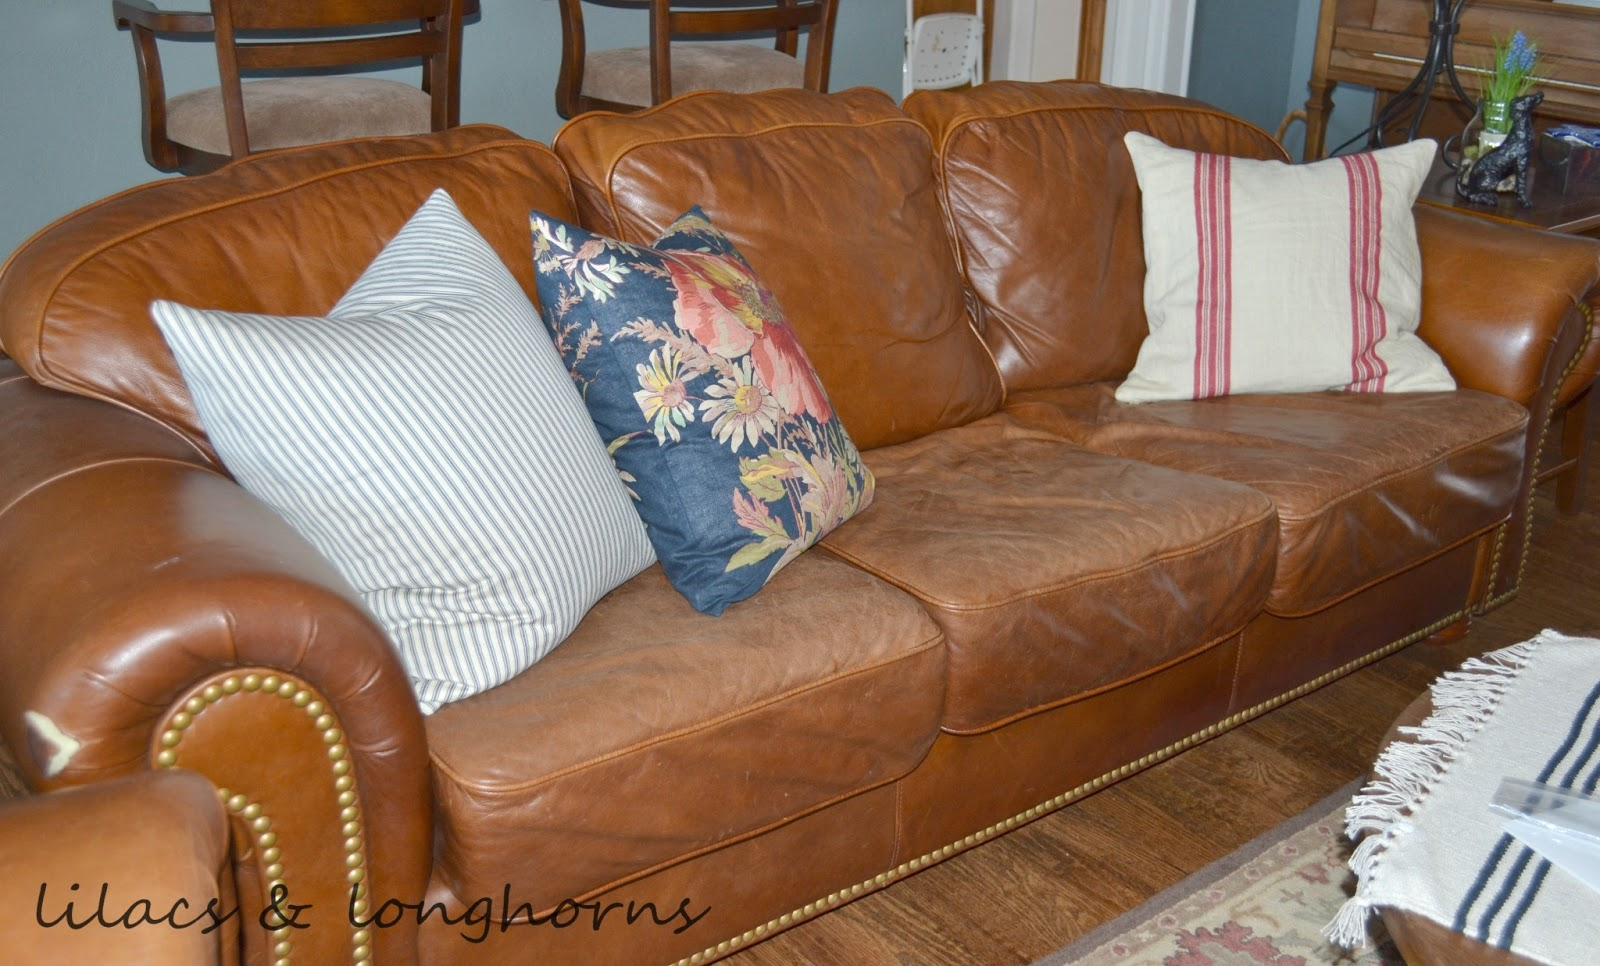 repairing and refurbishing leather furniture - Leather Sofa Repair